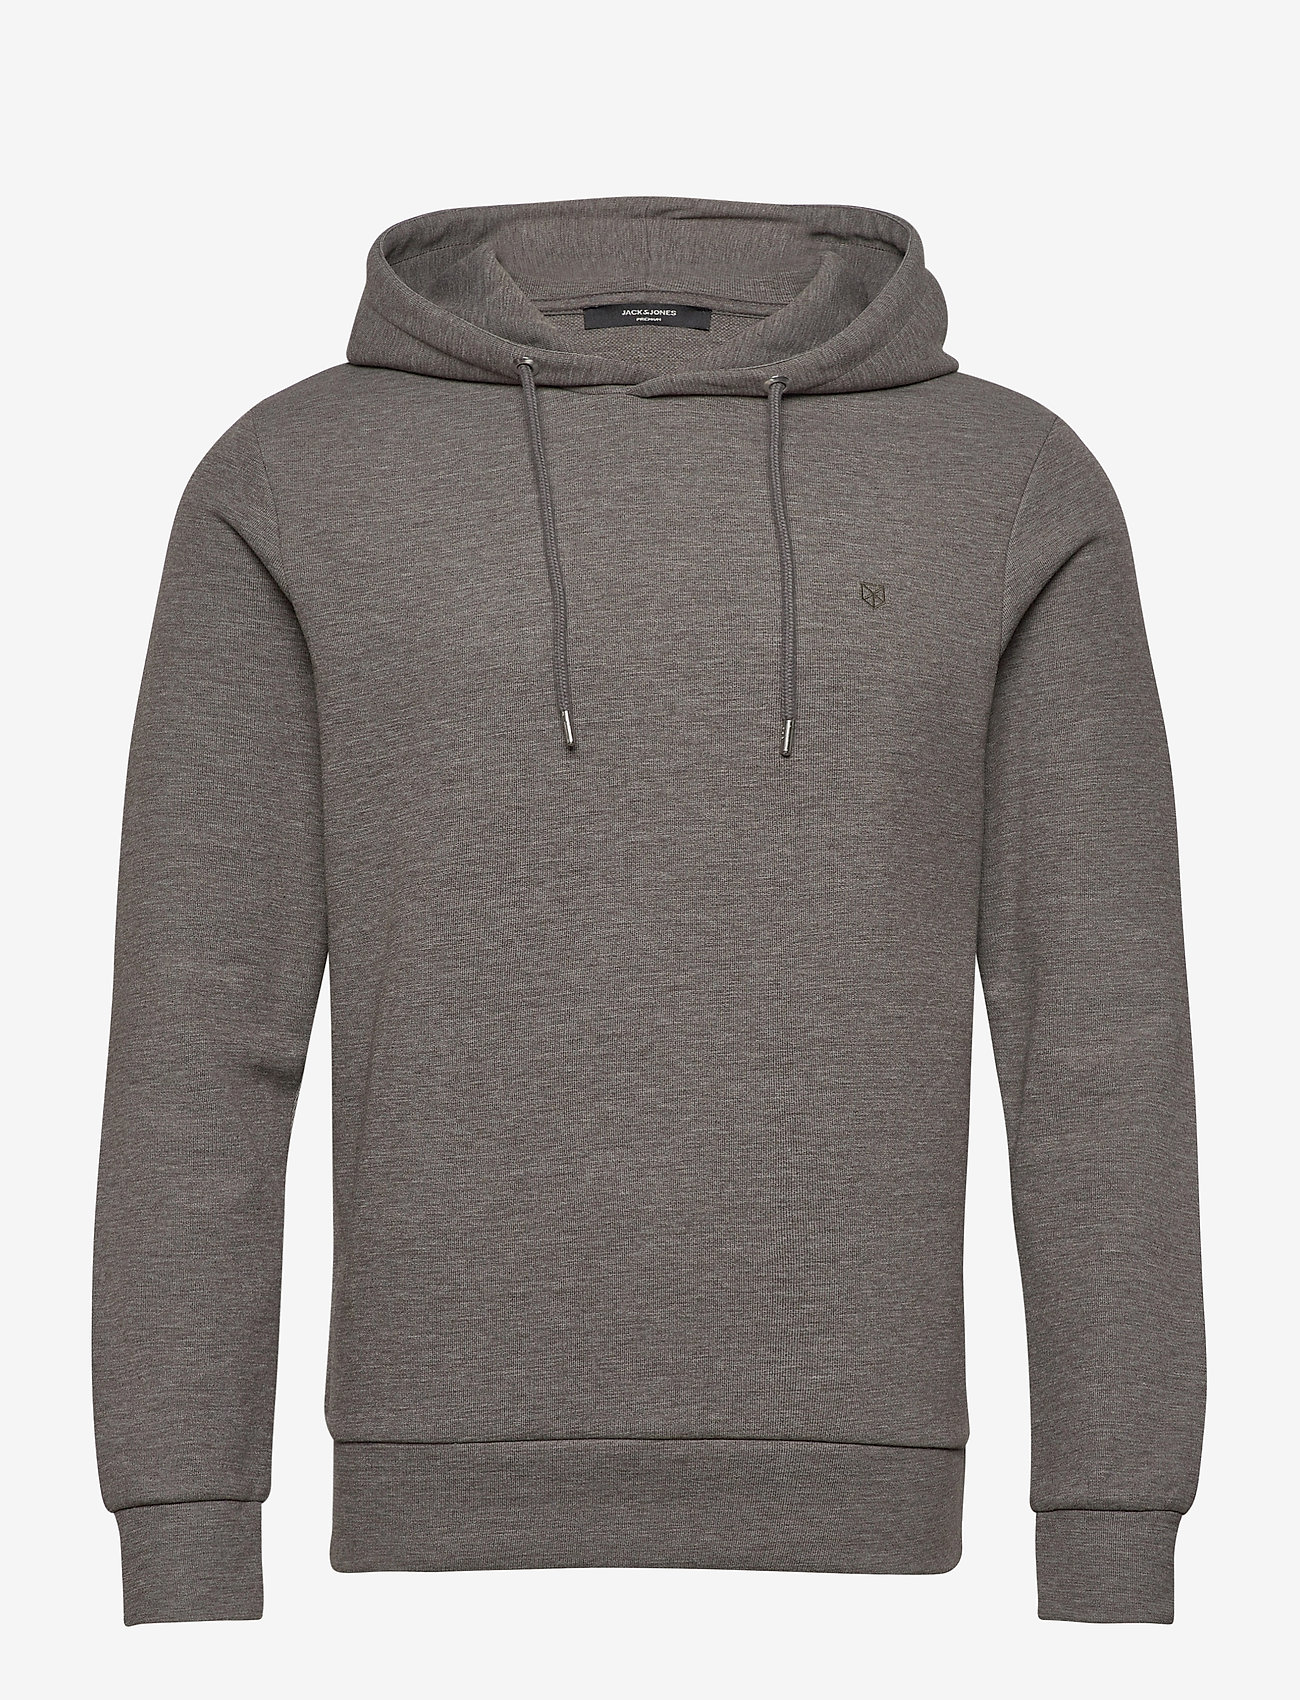 Jack & Jones - JPRBLAHARDY SWEAT HOOD PRE STS - basic sweatshirts - grey melange - 0